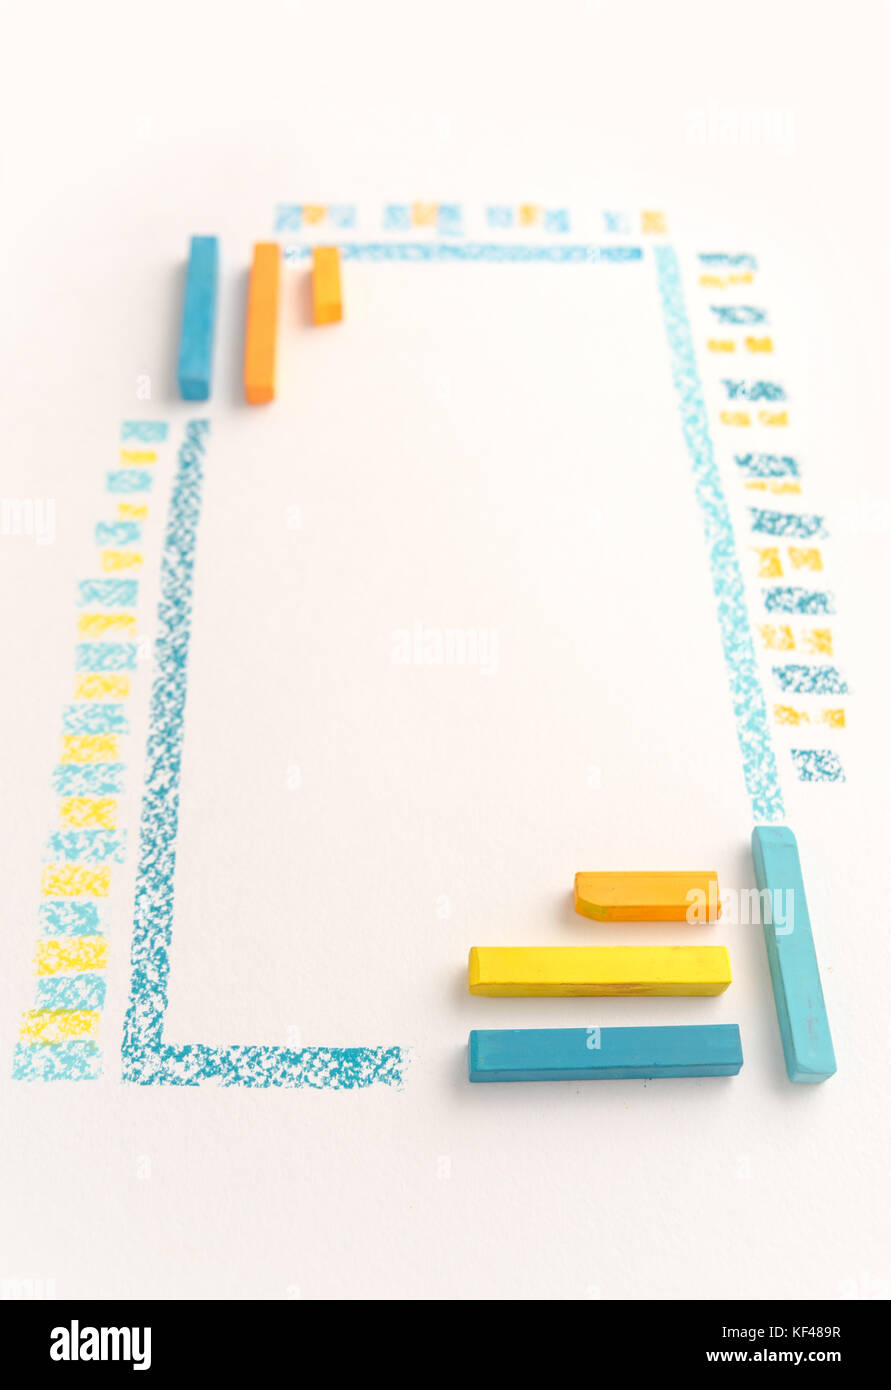 Close up photo of color chalk drawing as striped line on white paper background - Stock Image